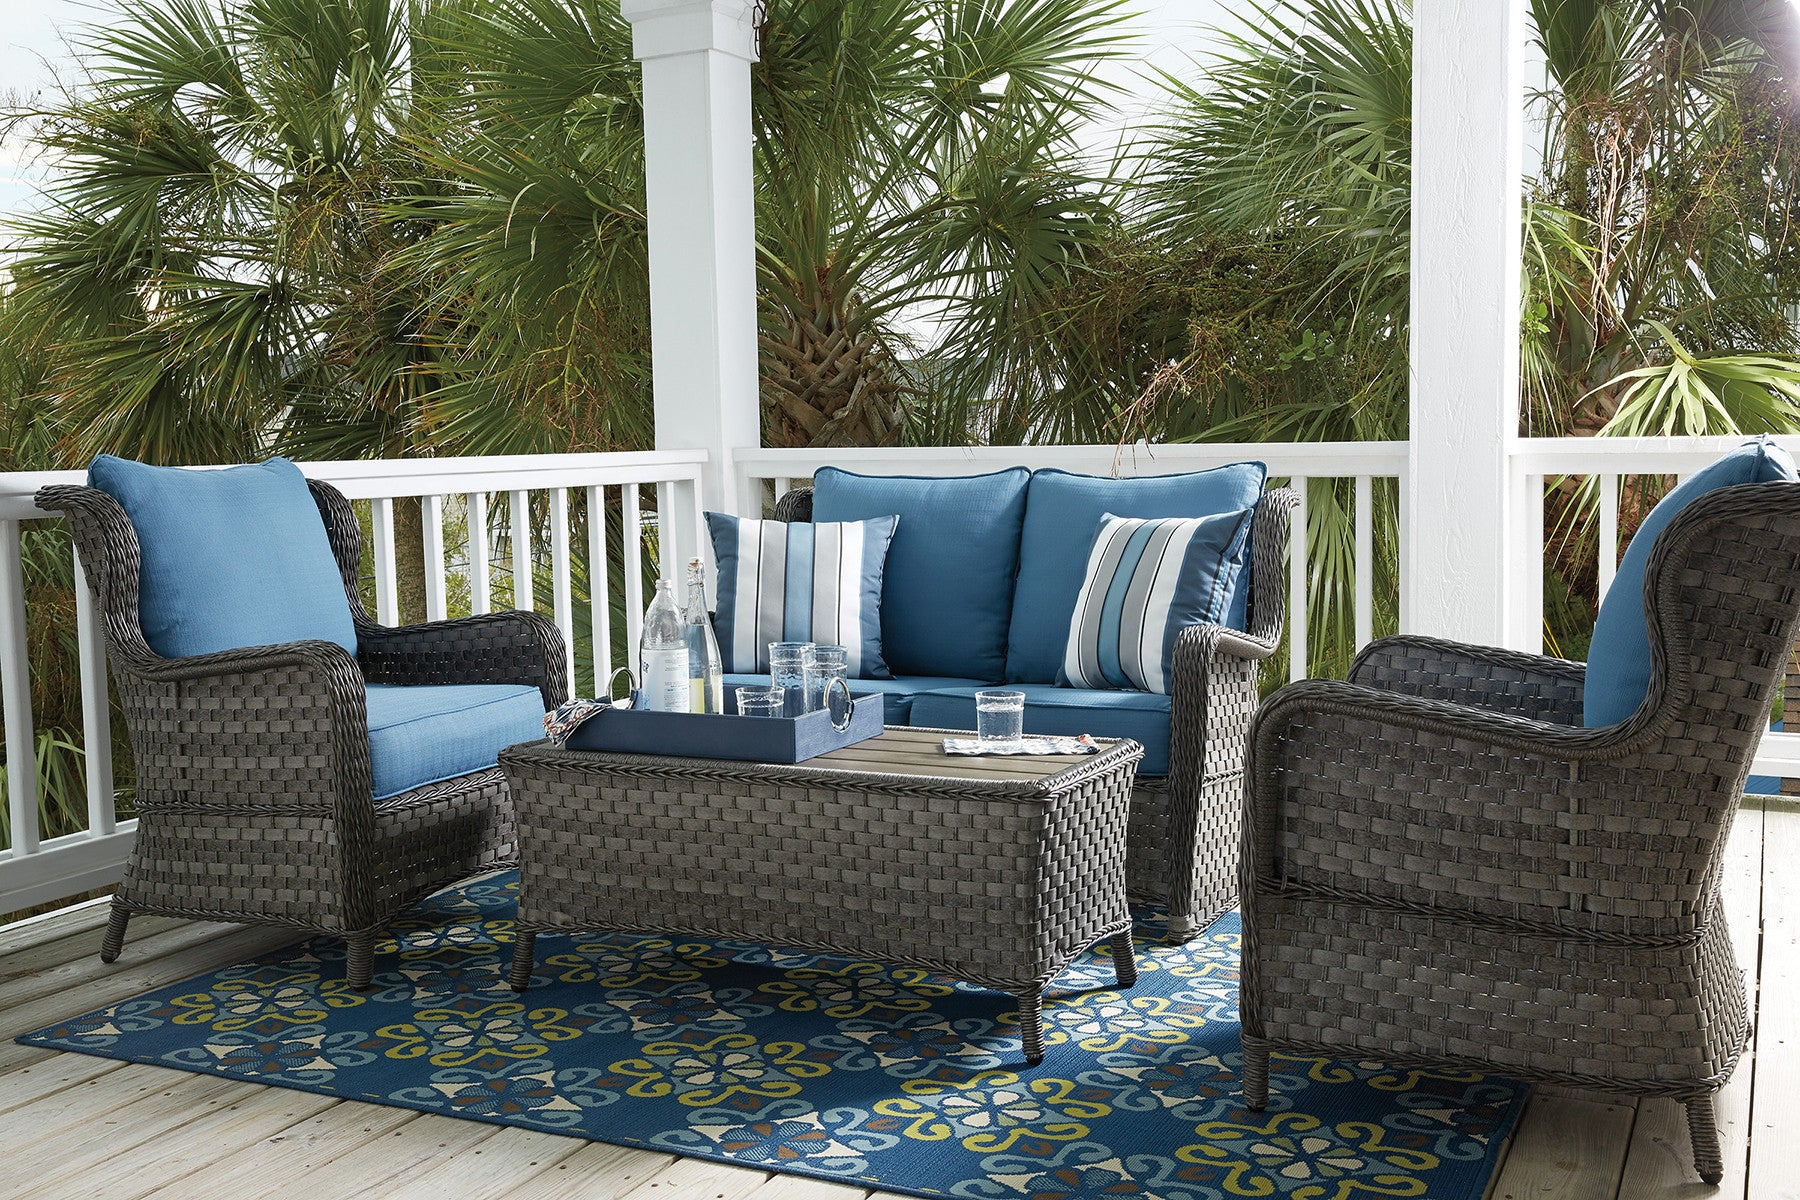 Outdoor living dufresne furniture appliances